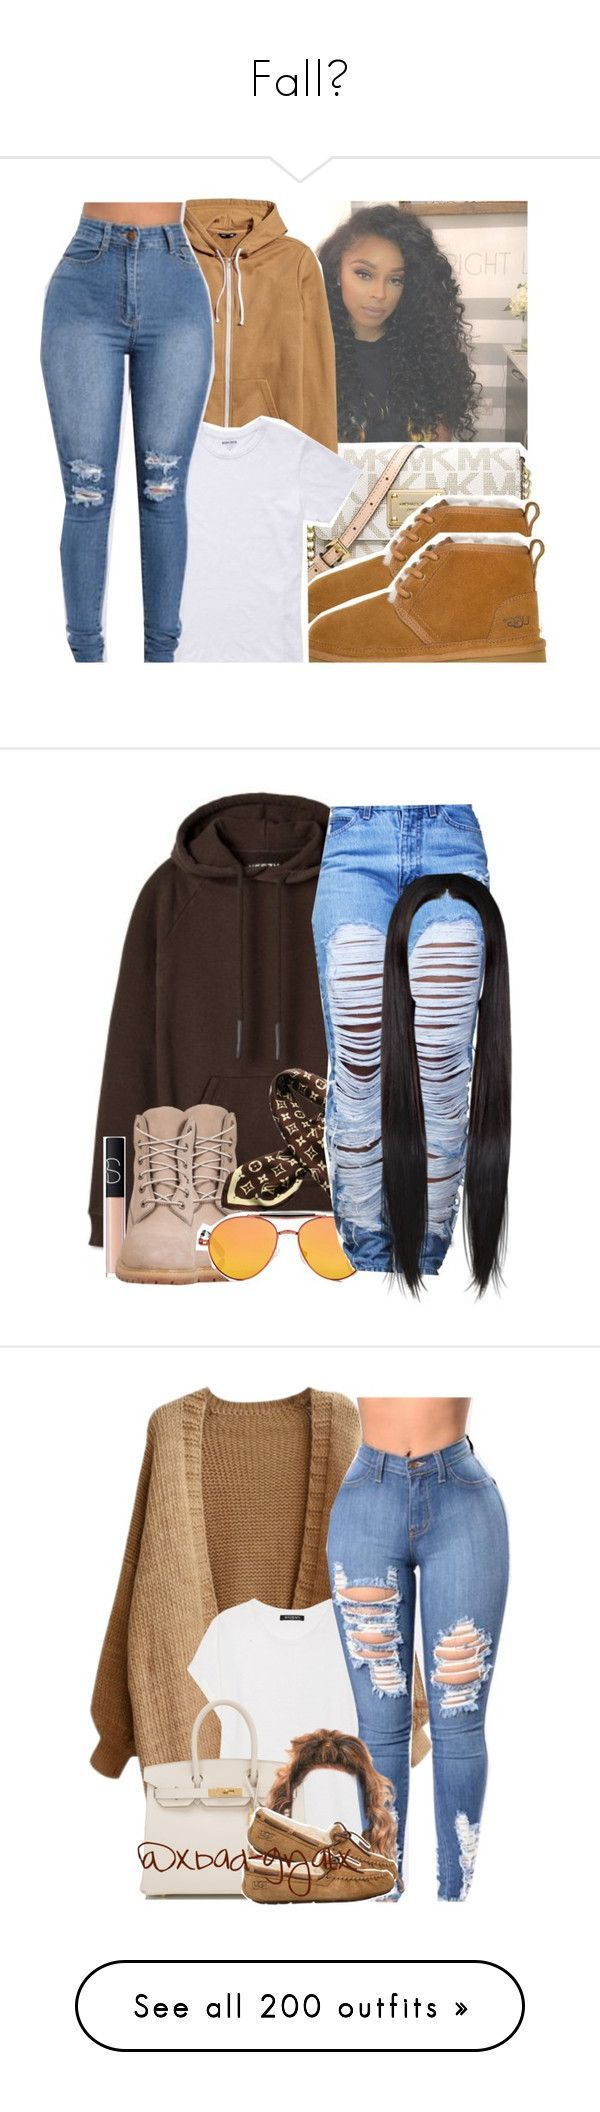 """Fall🍁"" by heavensincere ❤ liked on Polyvore featuring Michael Kors, UGG, Bonobos, Timberland, Louis Vuitton, Givenchy, NARS Cosmetics, Balmain, Hermès and UGG Australia"